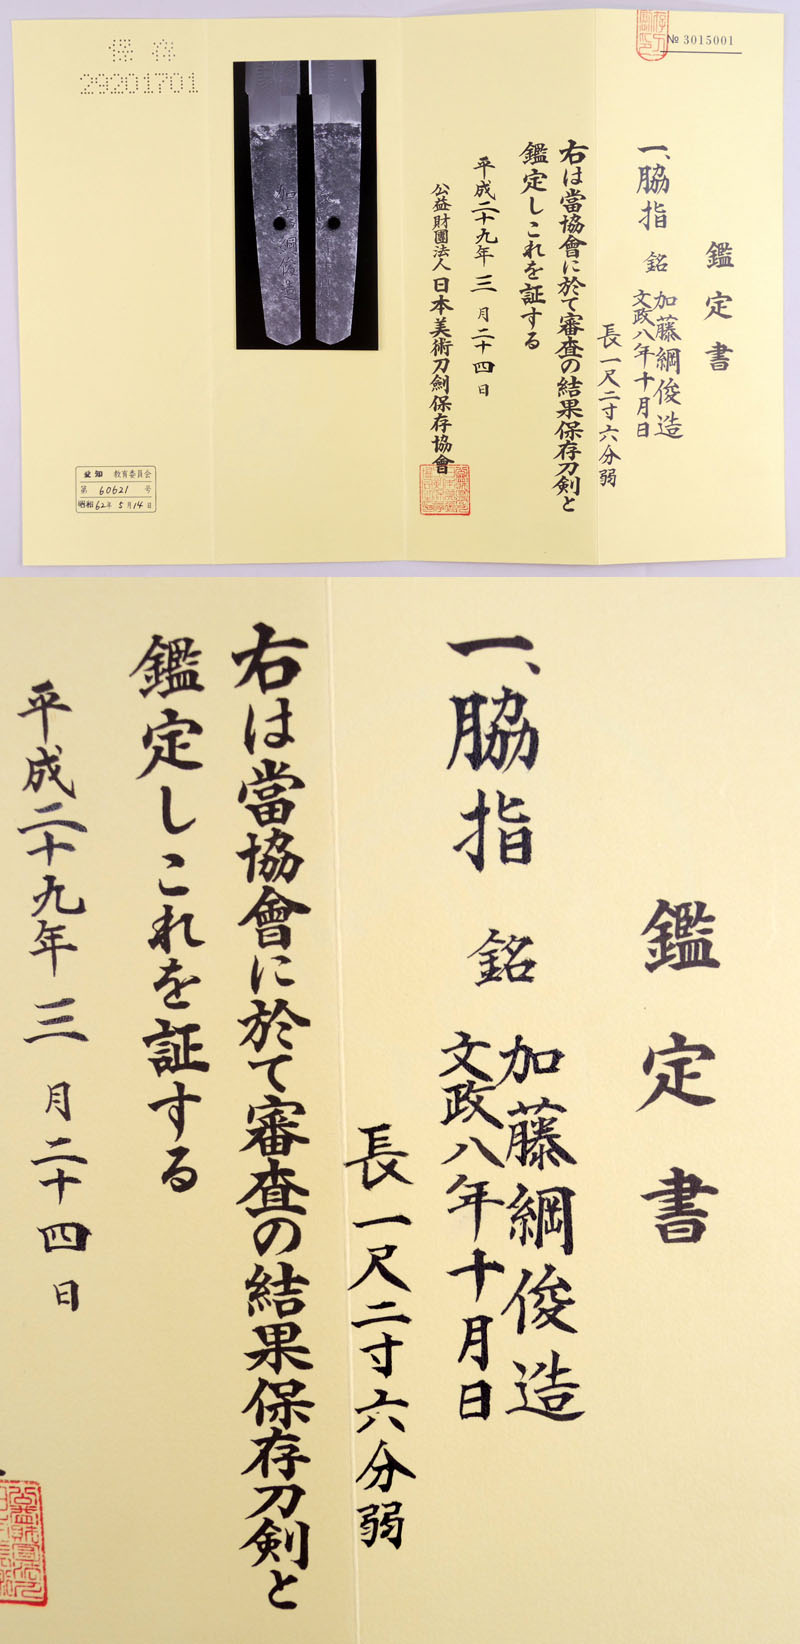 加藤綱俊造(初代綱俊) Picture of Certificate